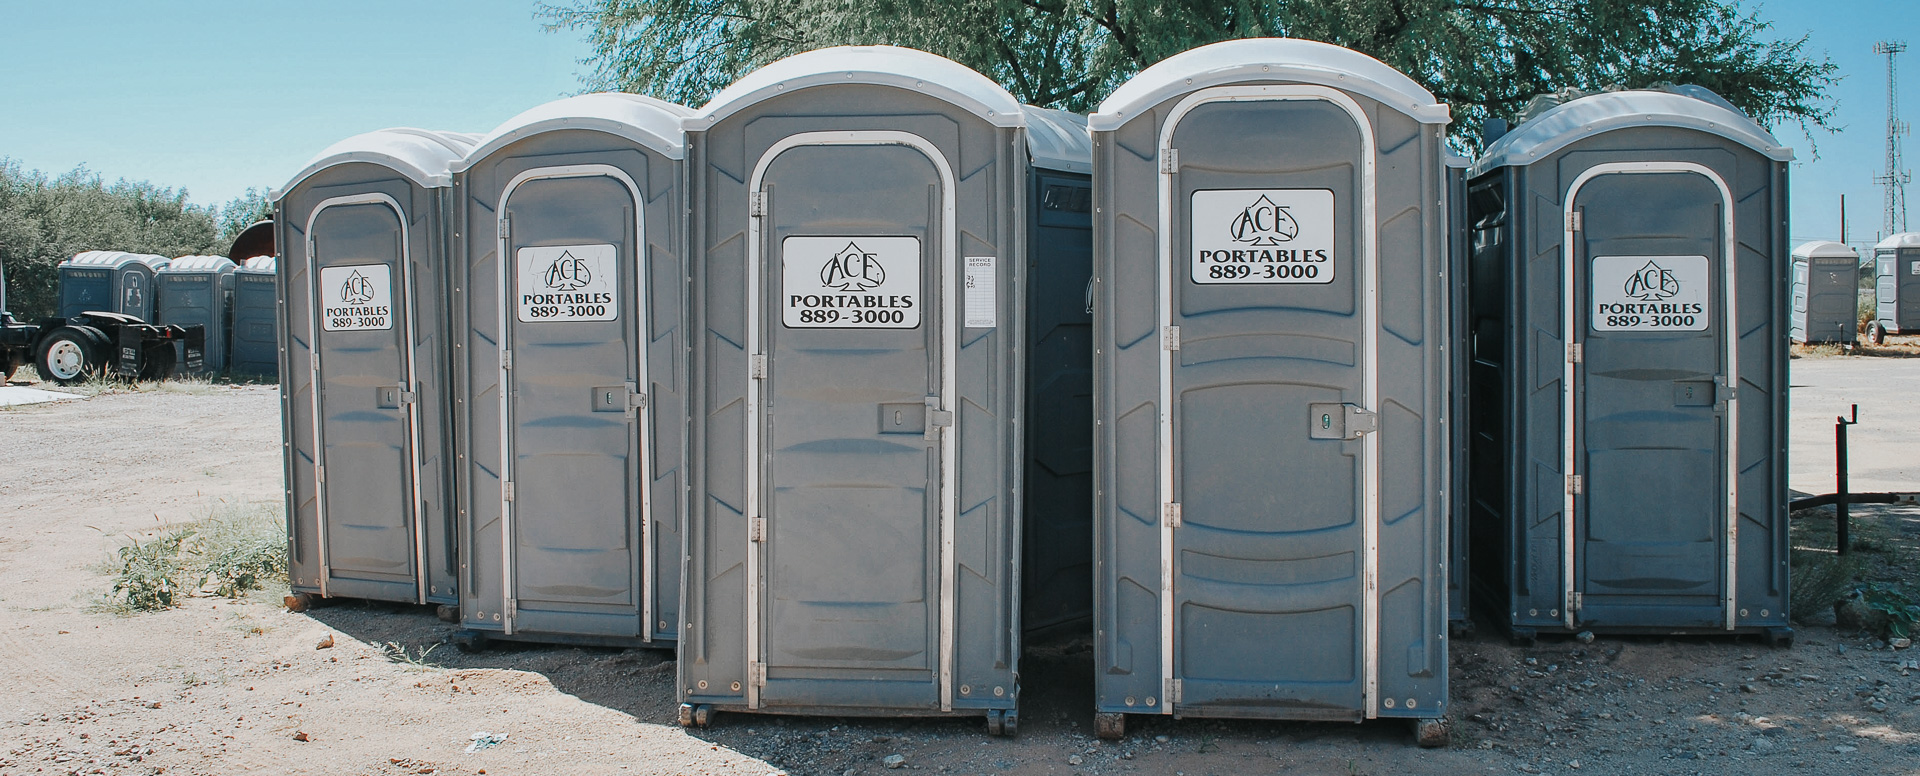 Ace Portable Toilets photo 3.jpg